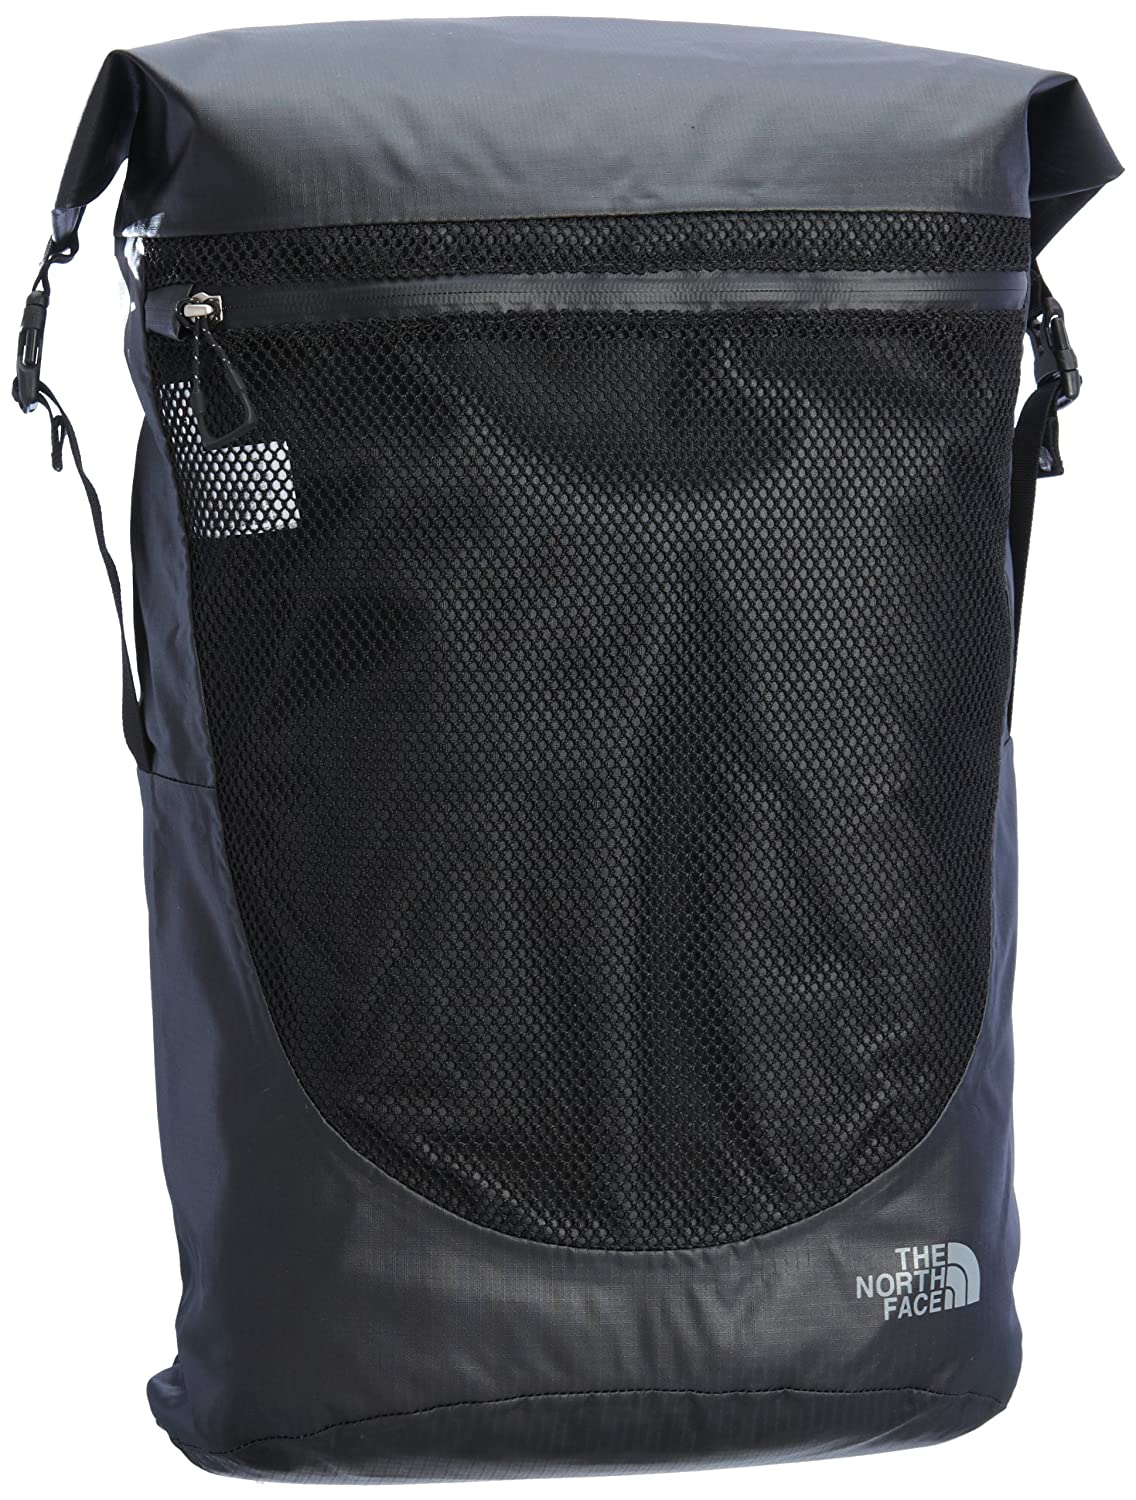 89a7dcc3728 The North Face Waterproof Backpack - Black/TNF Black, One Size:  Amazon.co.uk: Sports & Outdoors